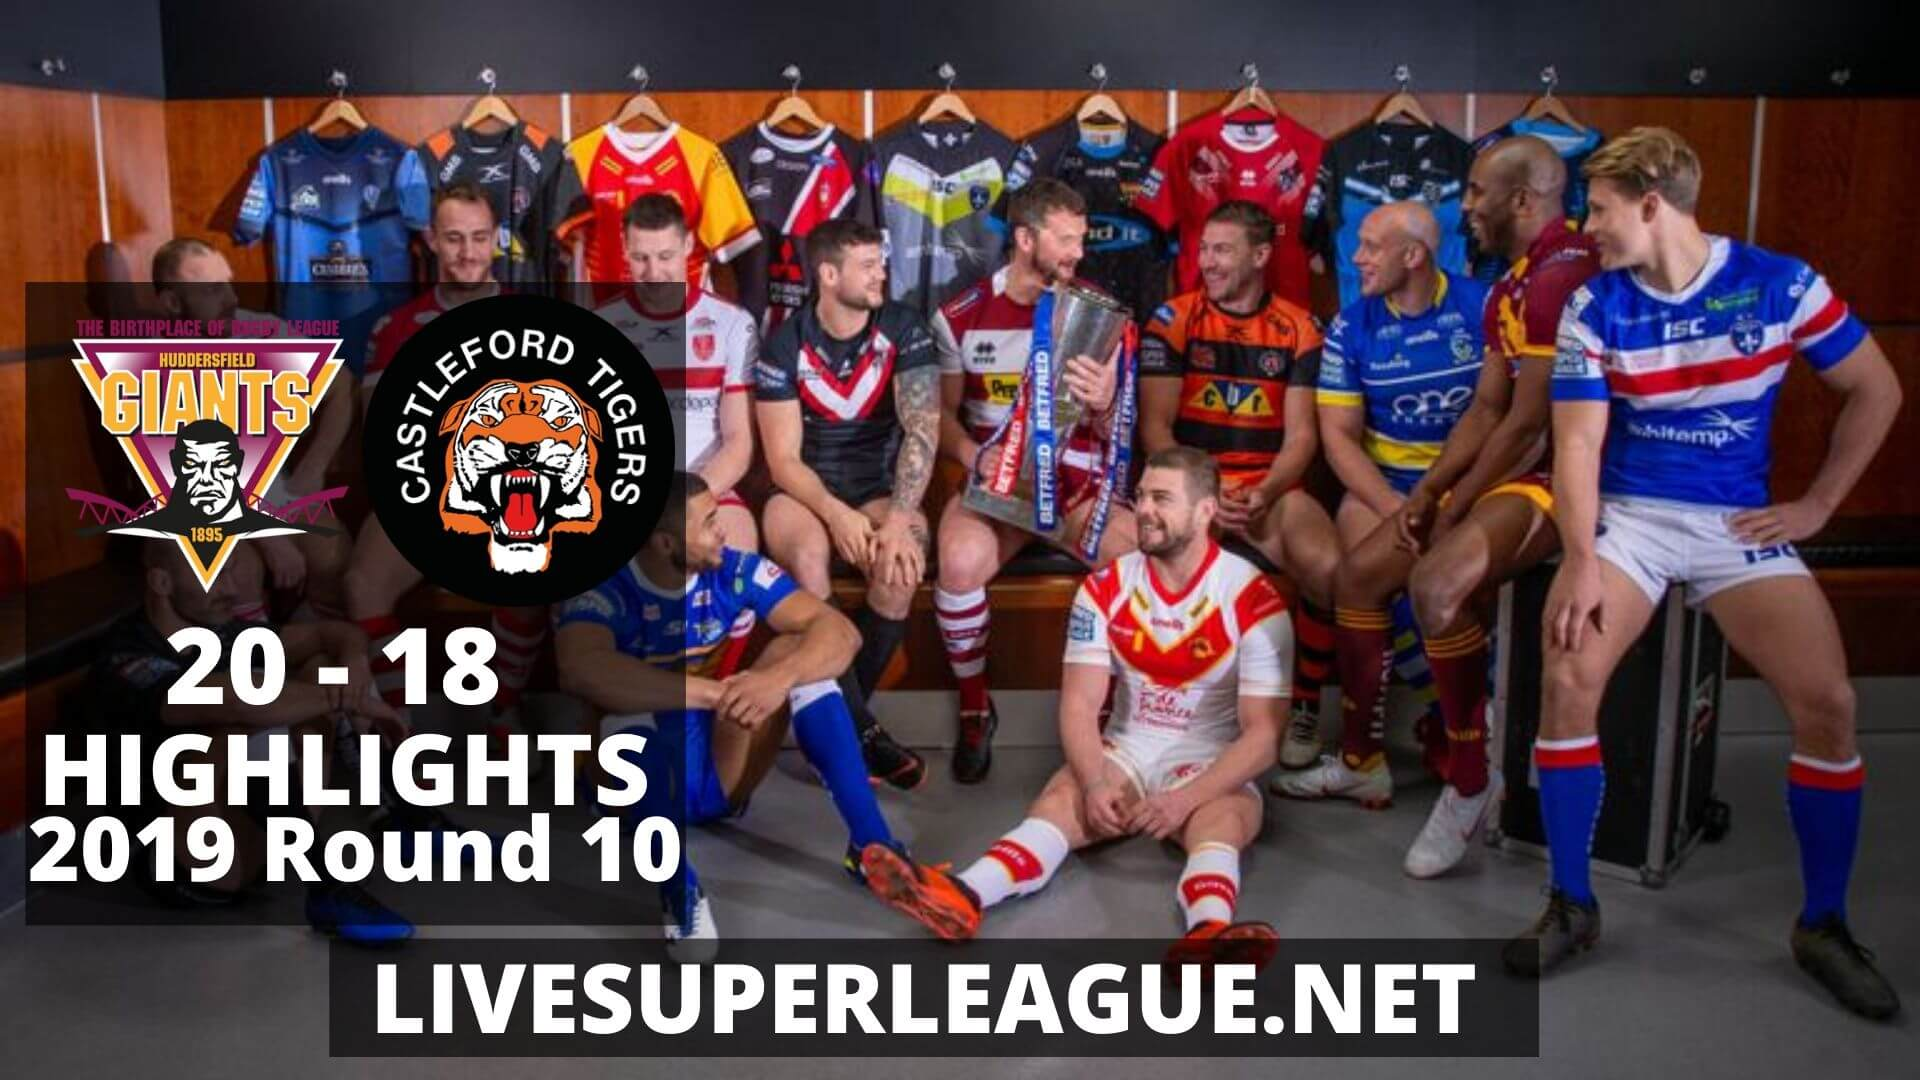 Huddersfield Giants vs Castleford Tigers Highlights 2019 Round 10